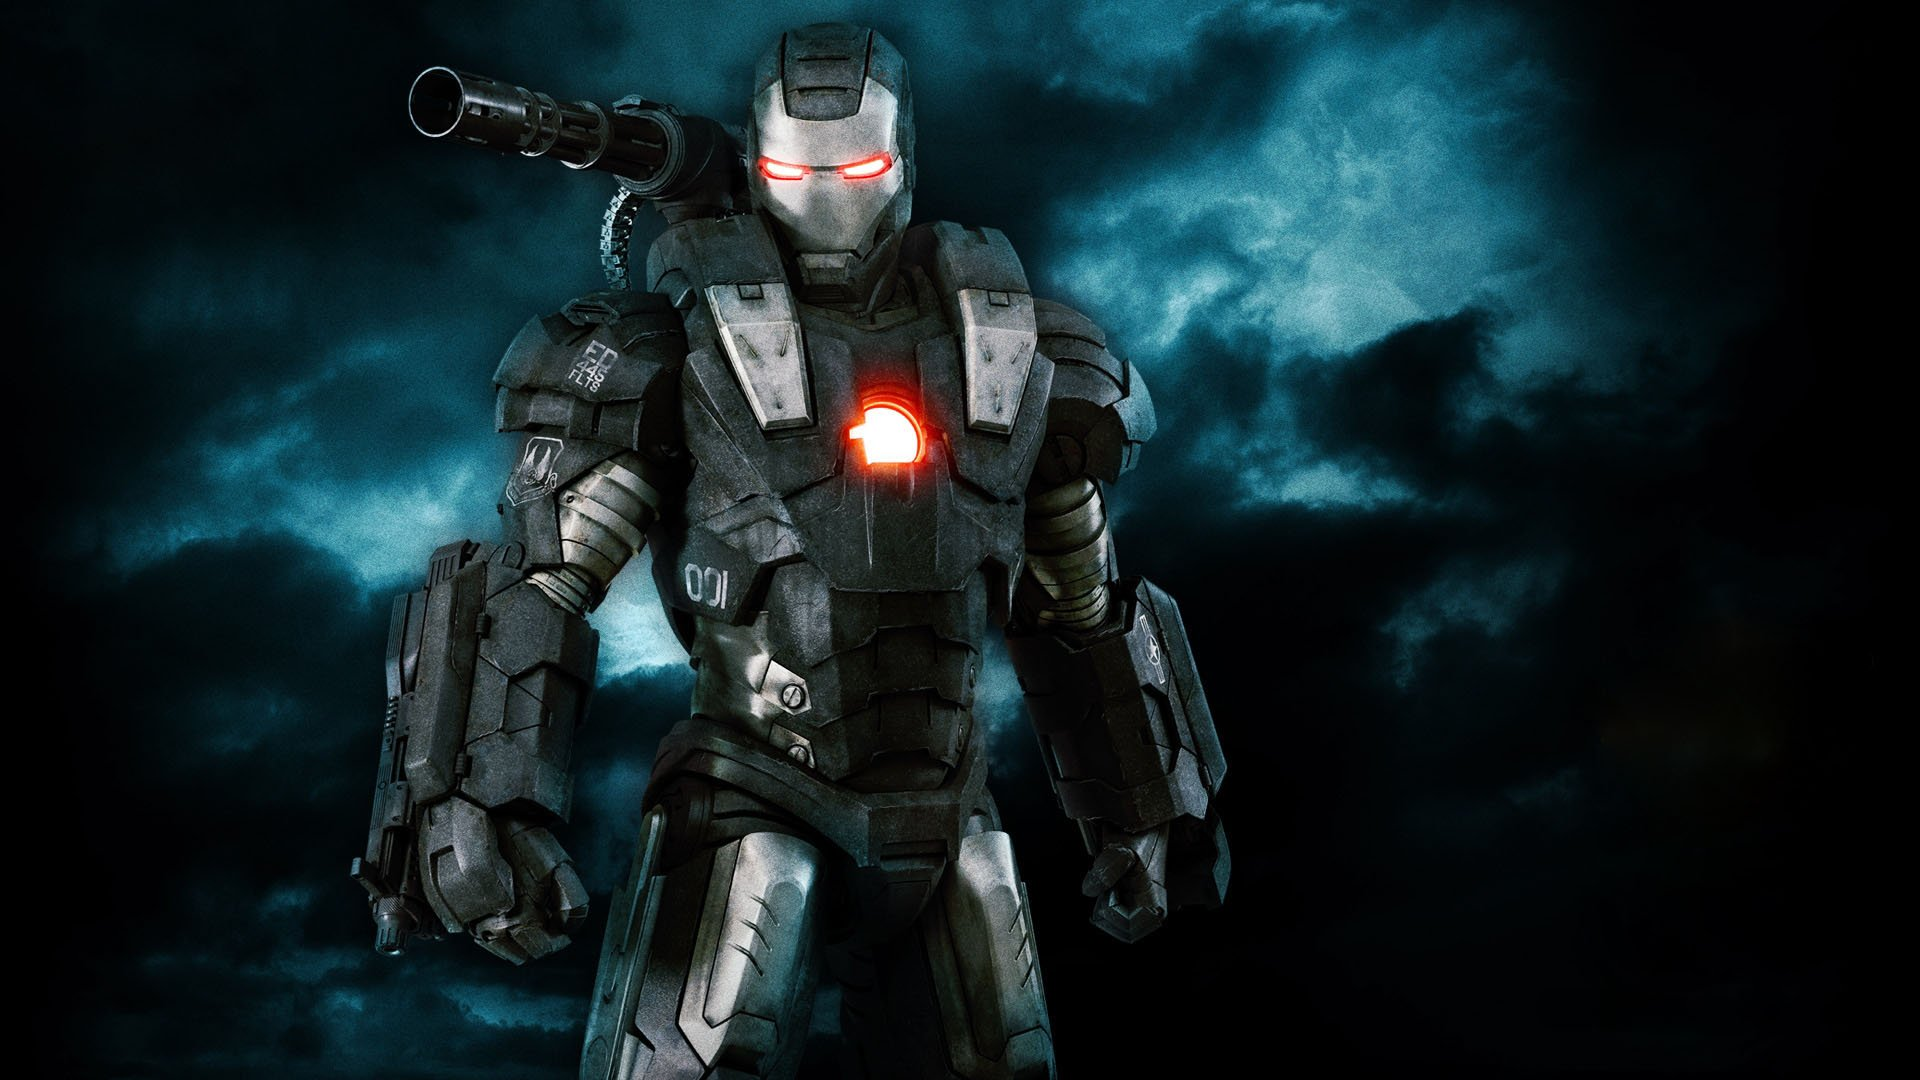 Cool Pictures Iron Man 3 HD Wallpaper of Movie   hdwallpaper2013 1920x1080